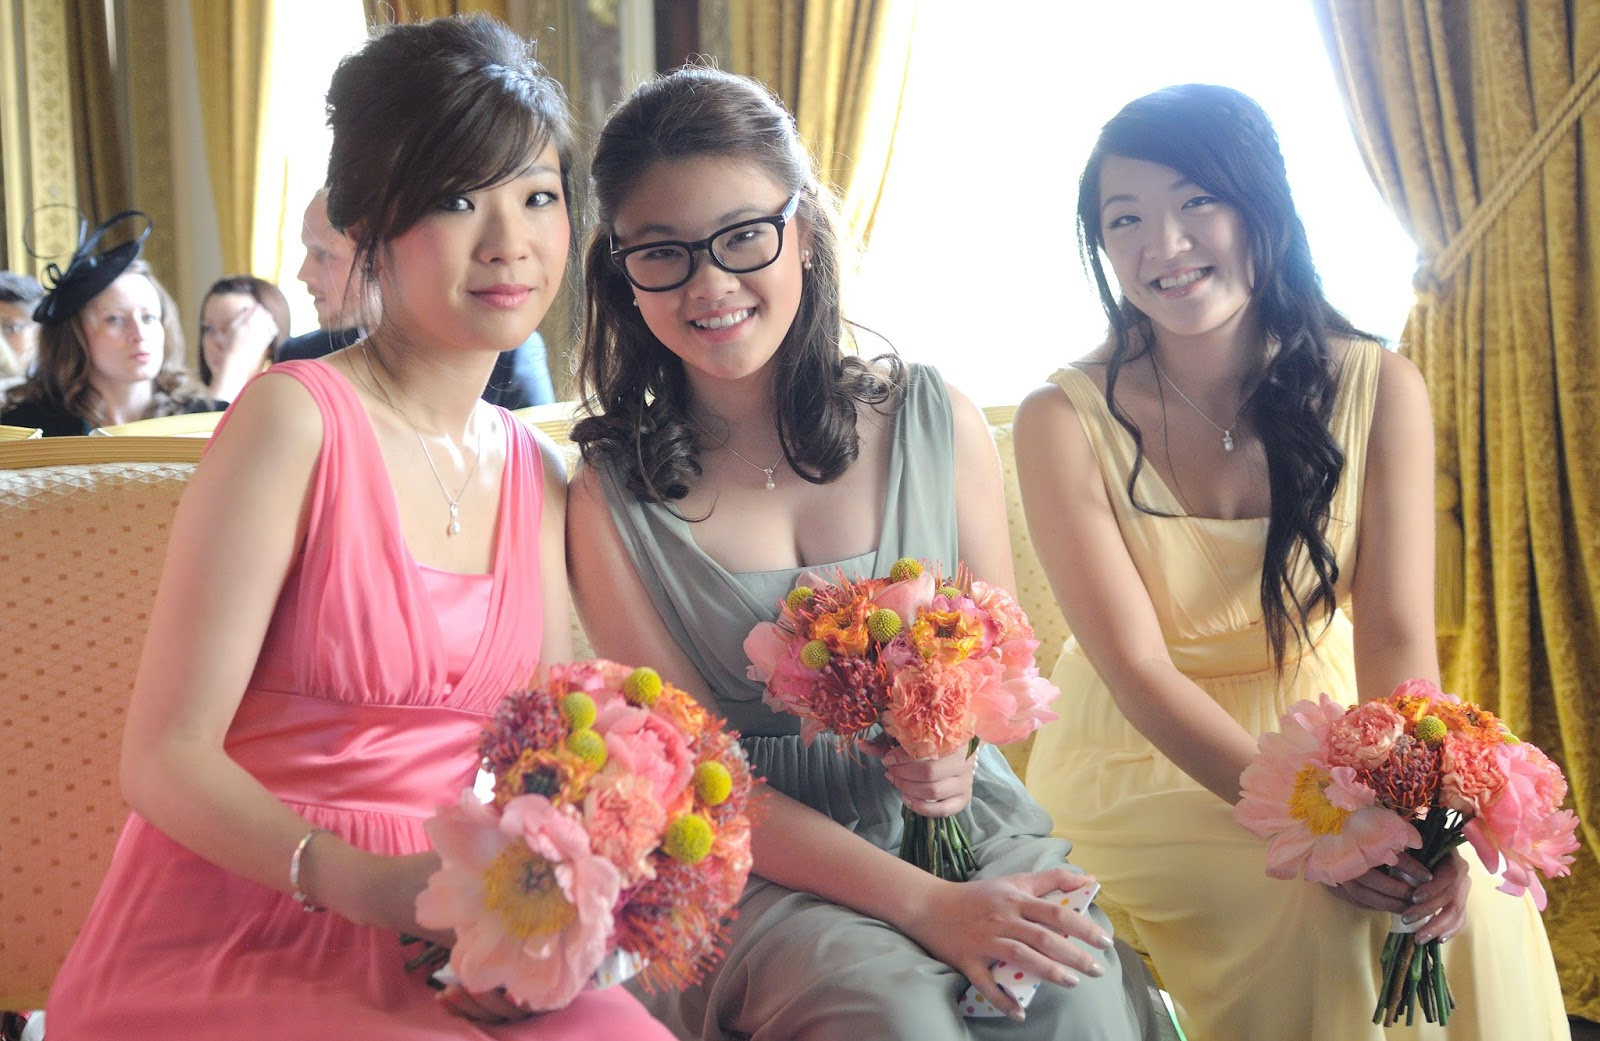 colourful bridesmaids dresses, chiffon bridesmaids dresses, a summer wedding